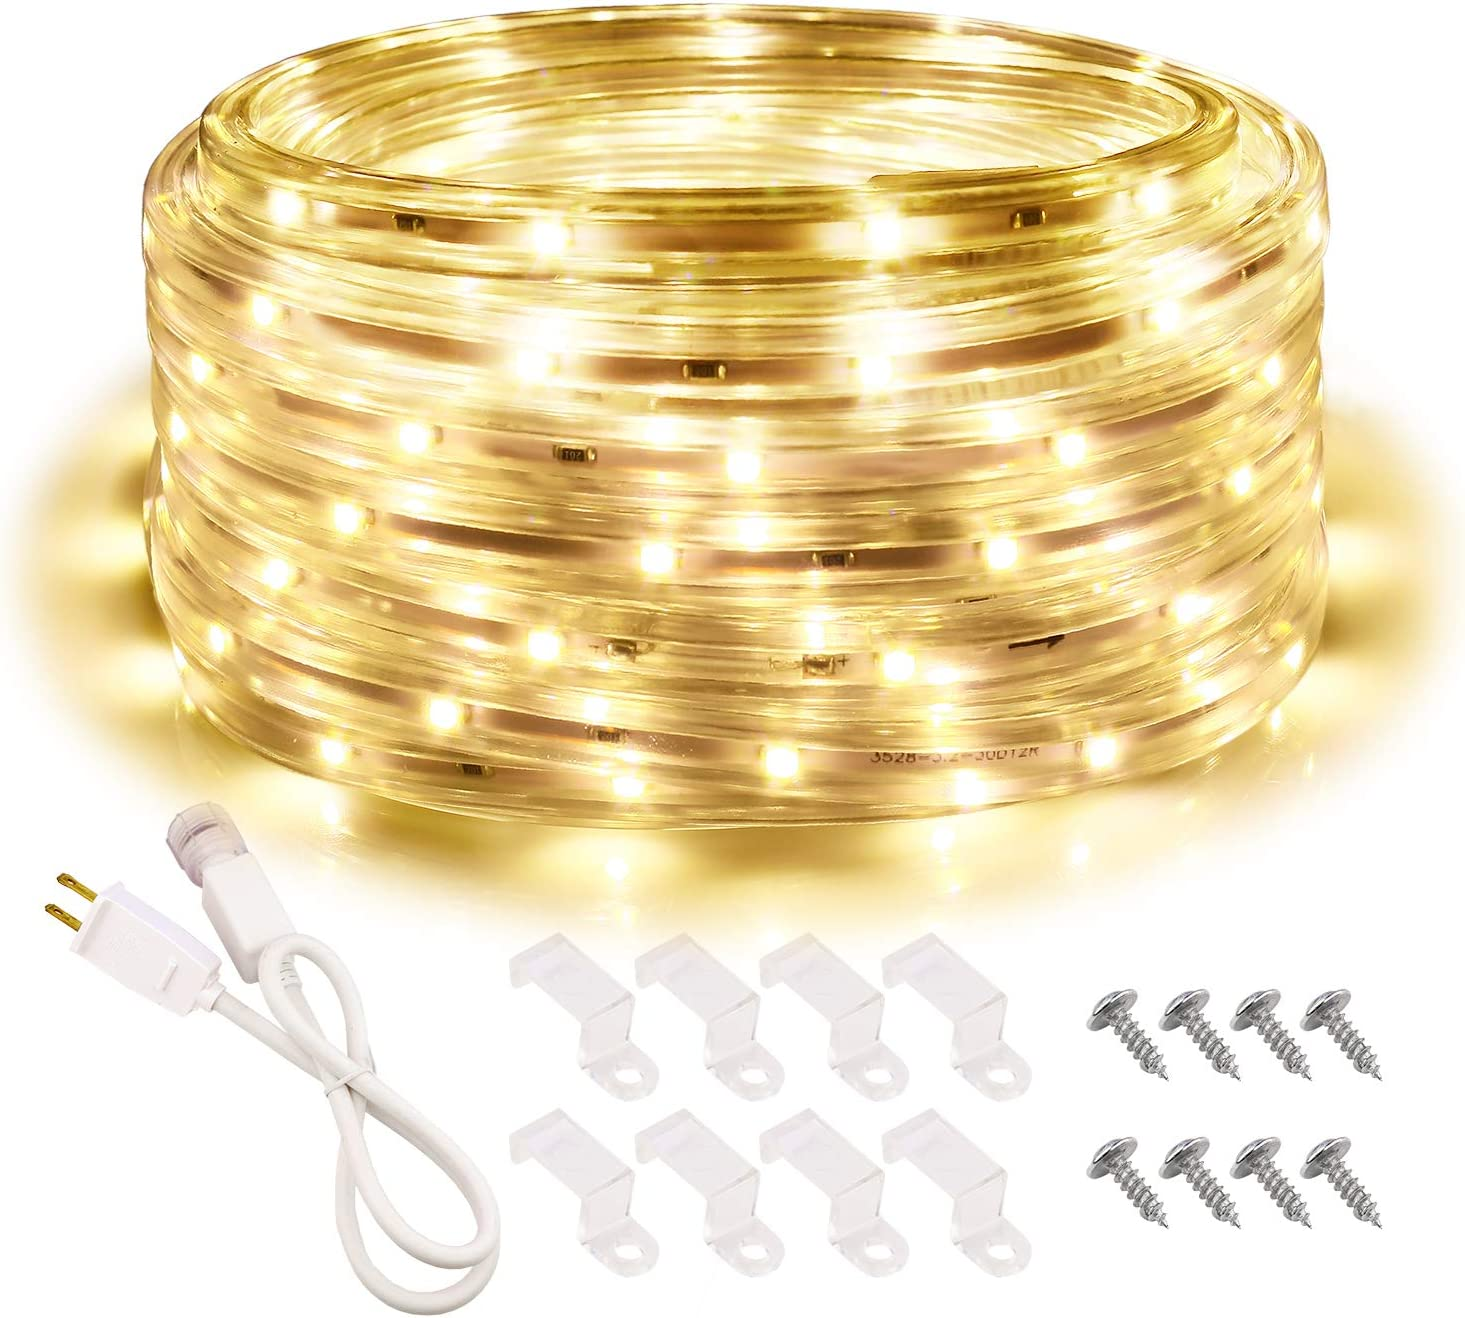 Areful LED Rope Lights, 16.4ft Waterproof Strip Light, 3000K Soft White, Indoor Outdoor Decorative Lighting for Home Christmas Holiday Garden Patio Party